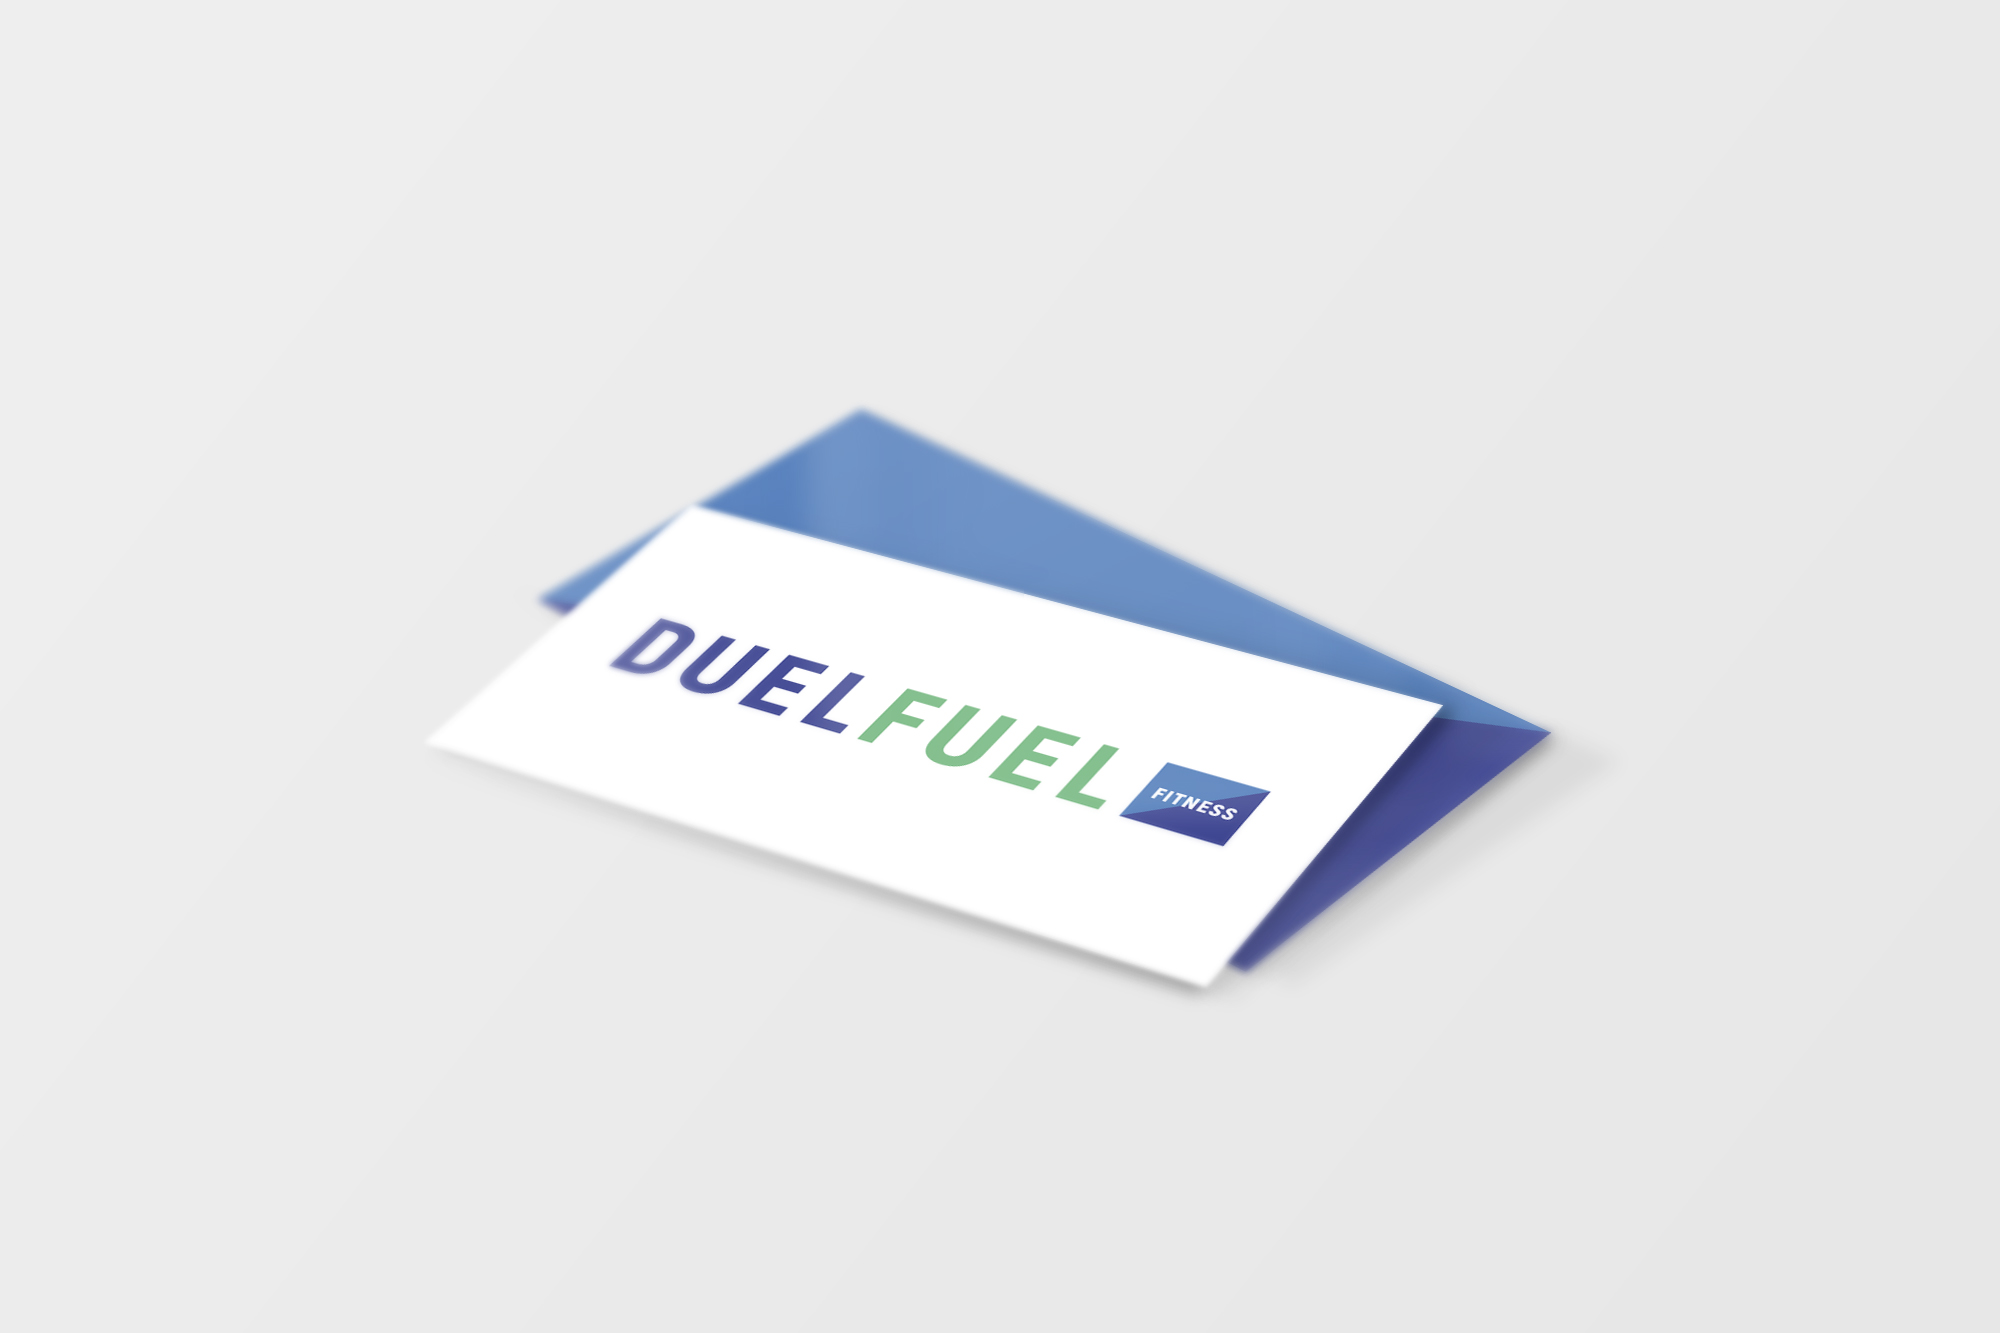 Golden-Antler-Design-Milwaukee-Web-Branding-Marketing-Duel-Fuel-Fitness-Business-Cards-Printing